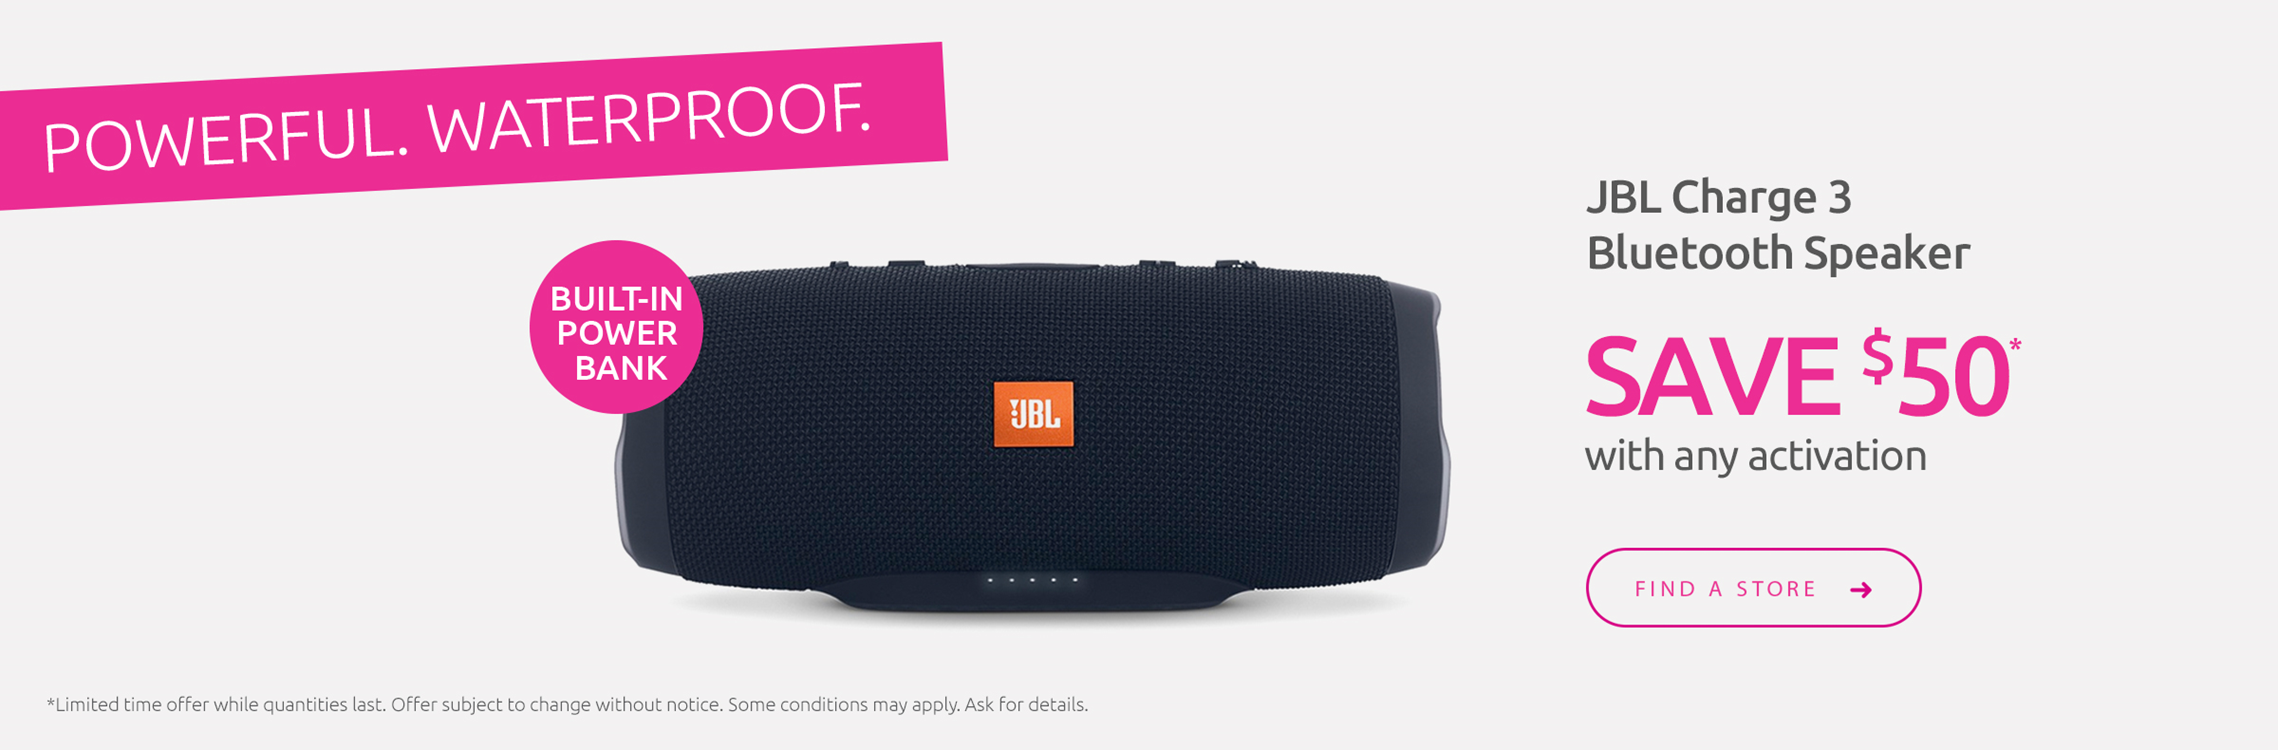 JBL Speaker Save $50 with any activation